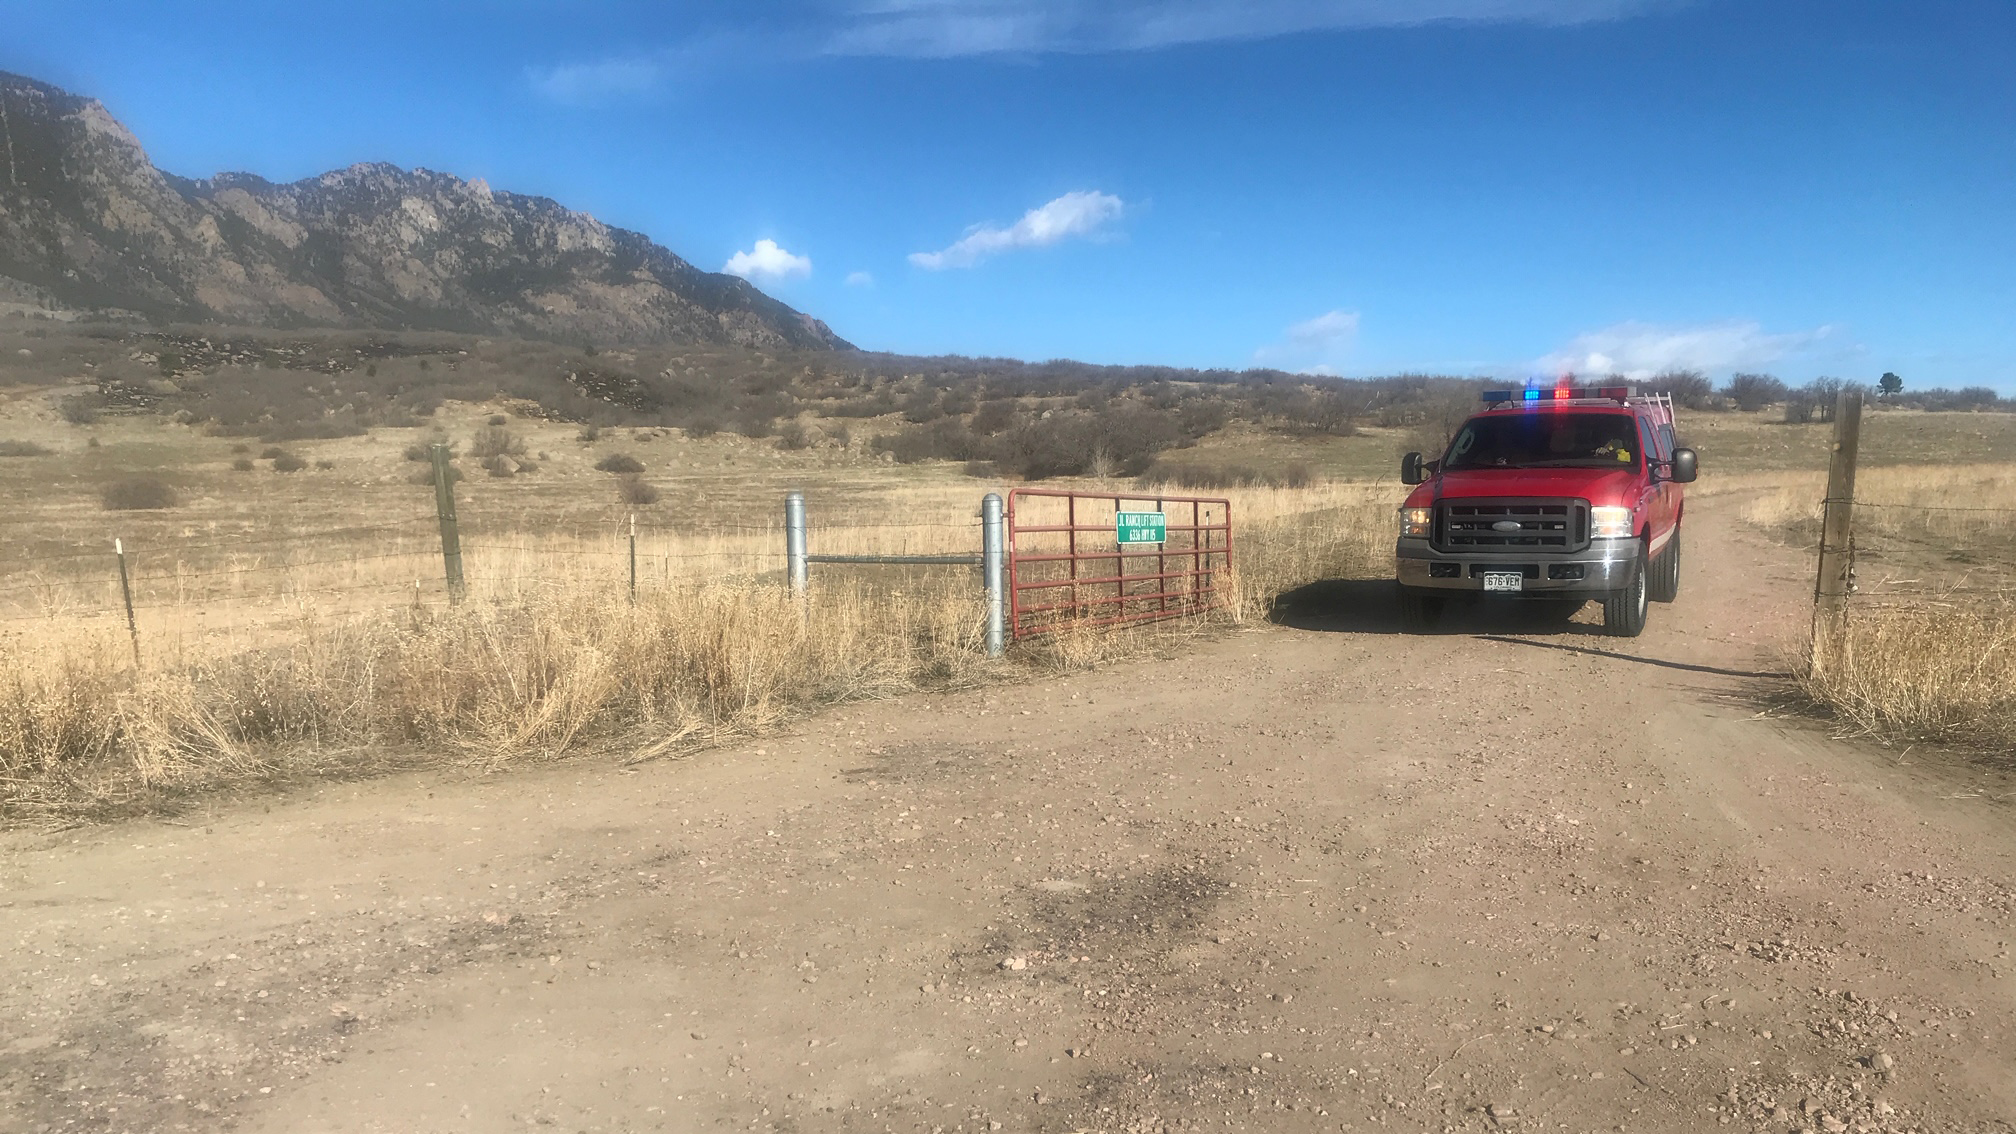 Crews are working to contain a grass fire burning near Cheyenne Mountain State Park Thursday morning. / Mike Duran - FOX21 News